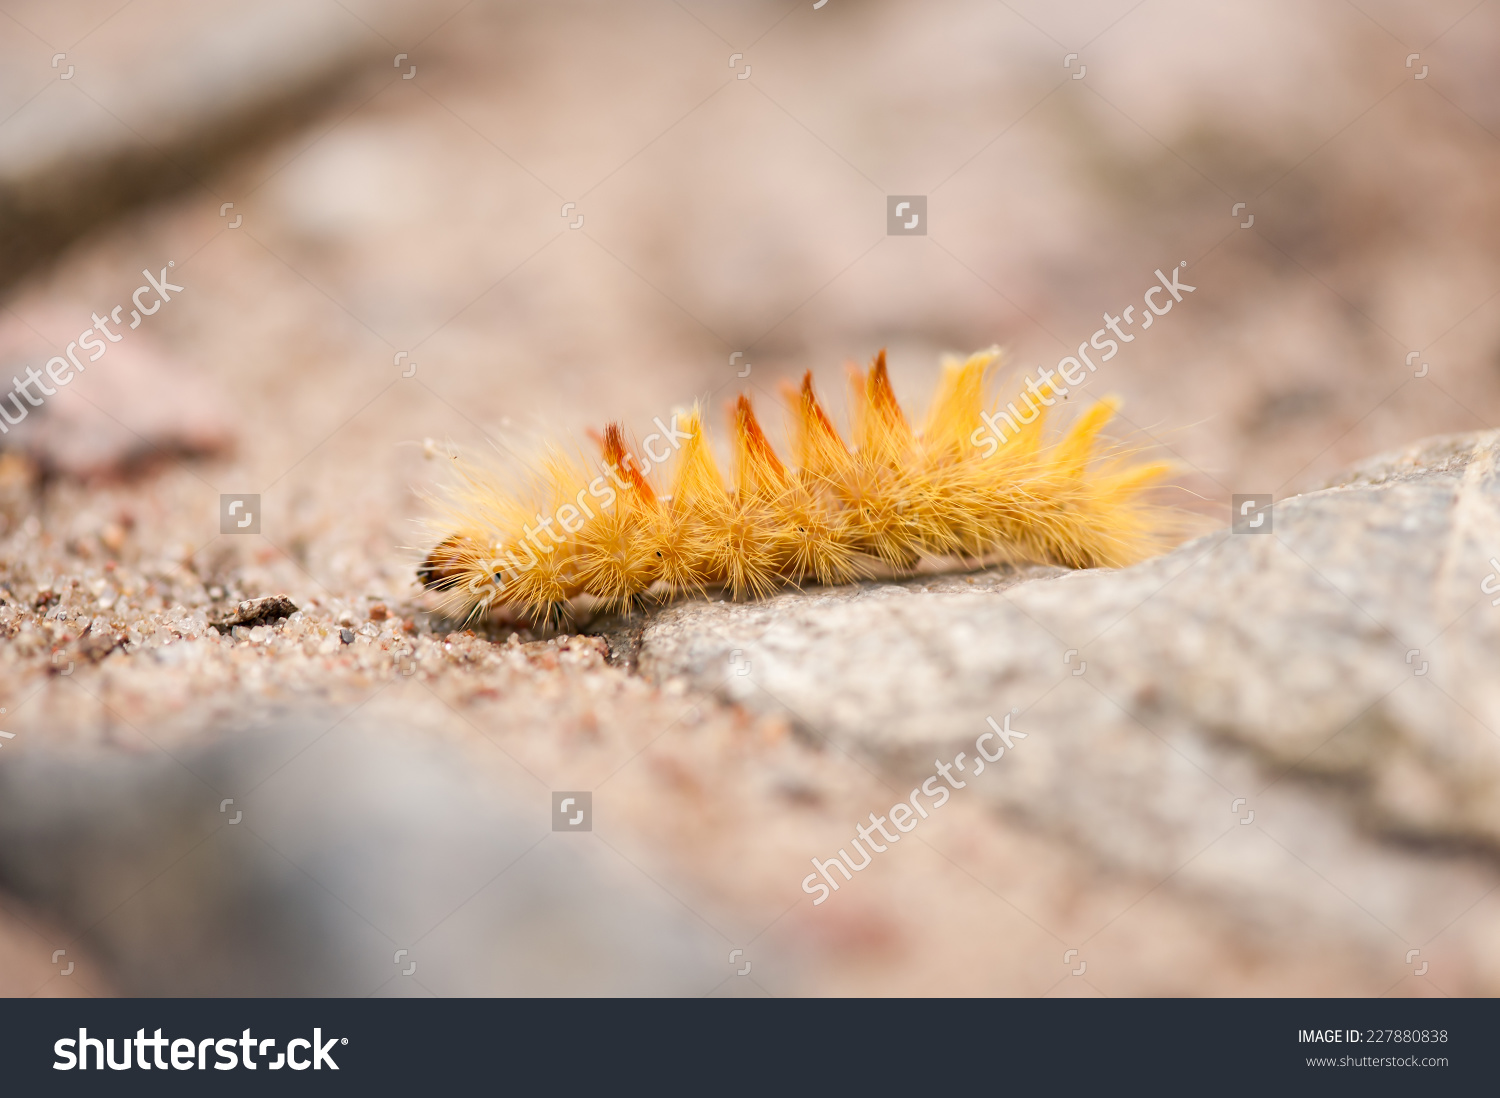 Sycamore Yellow Caterpillar, Moth Acronicta Aceris, Polish Name.